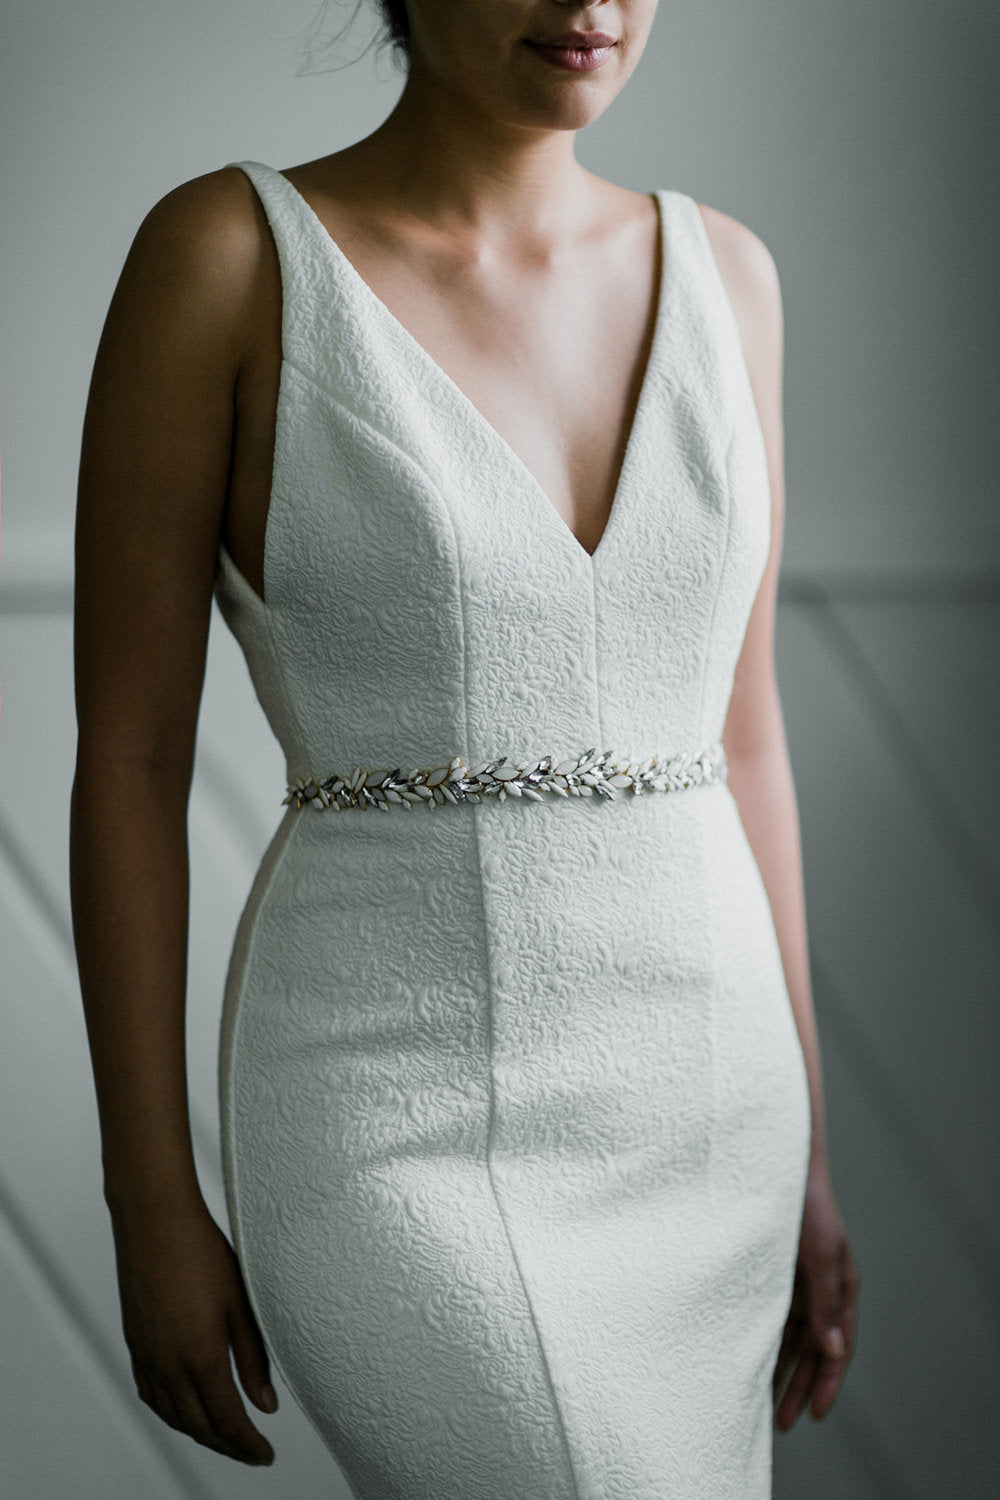 Simone-belts-Hushed Commotion